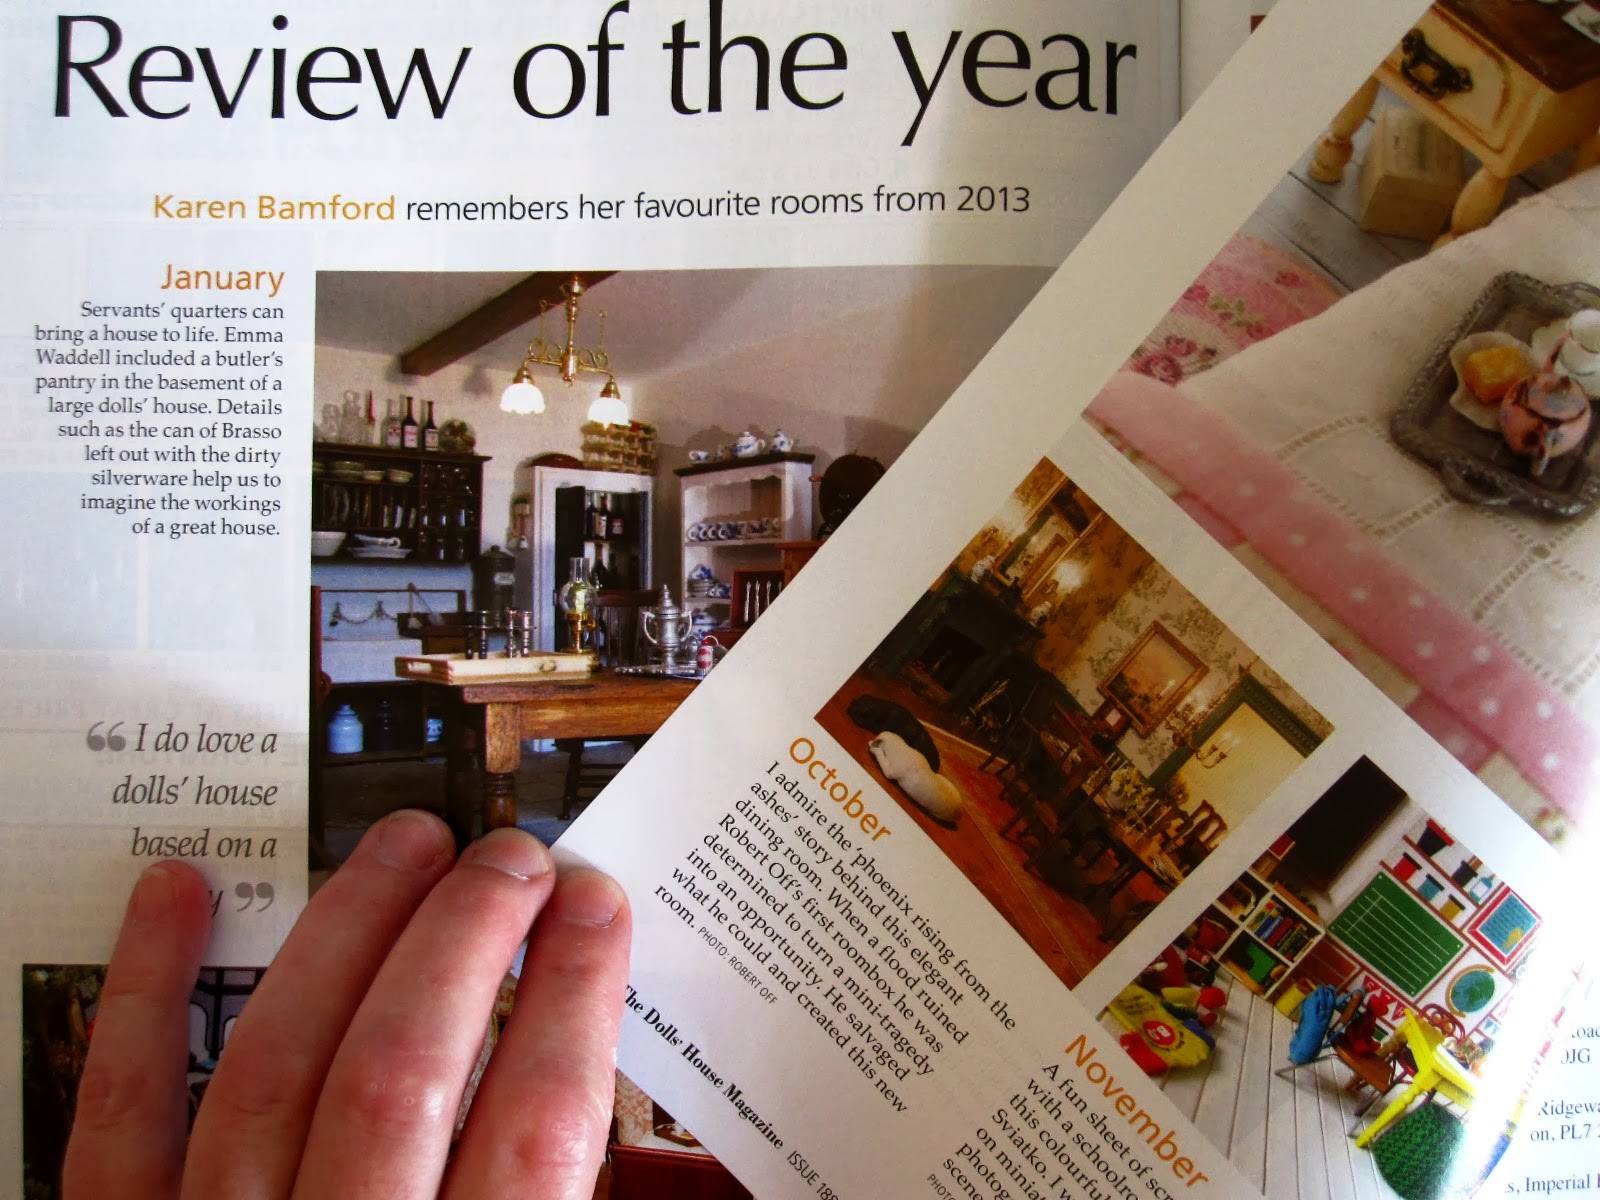 The Dolls' House Magazine's Review of the year 2013 article showing my modern miniature playroom